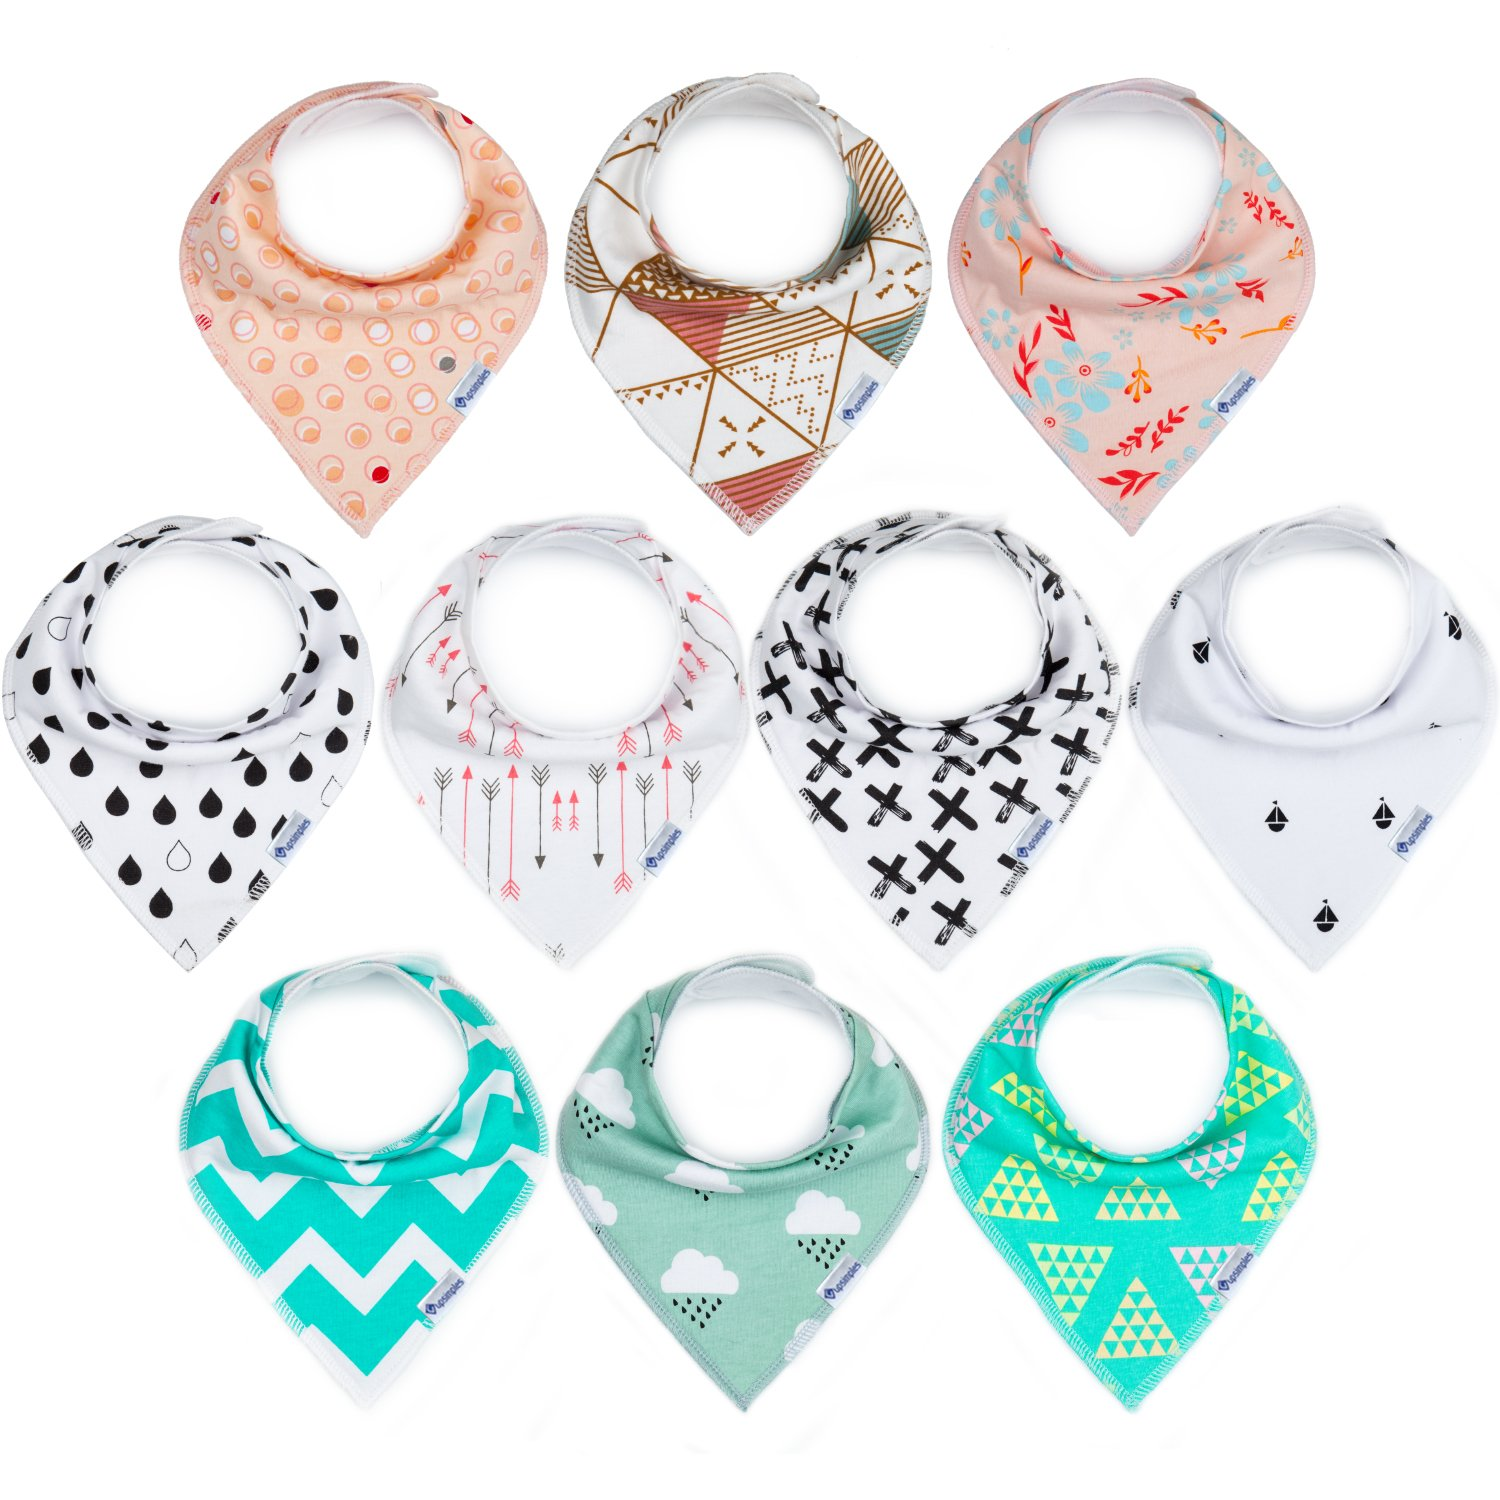 10-Pack Bandana Bibs Upsimples Baby Drool Bibs for Drooling and Teething, 100% Cotton Super Absorbent, 10 Stylish Design for Baby Girls Toddler, Baby Shower Gift Set